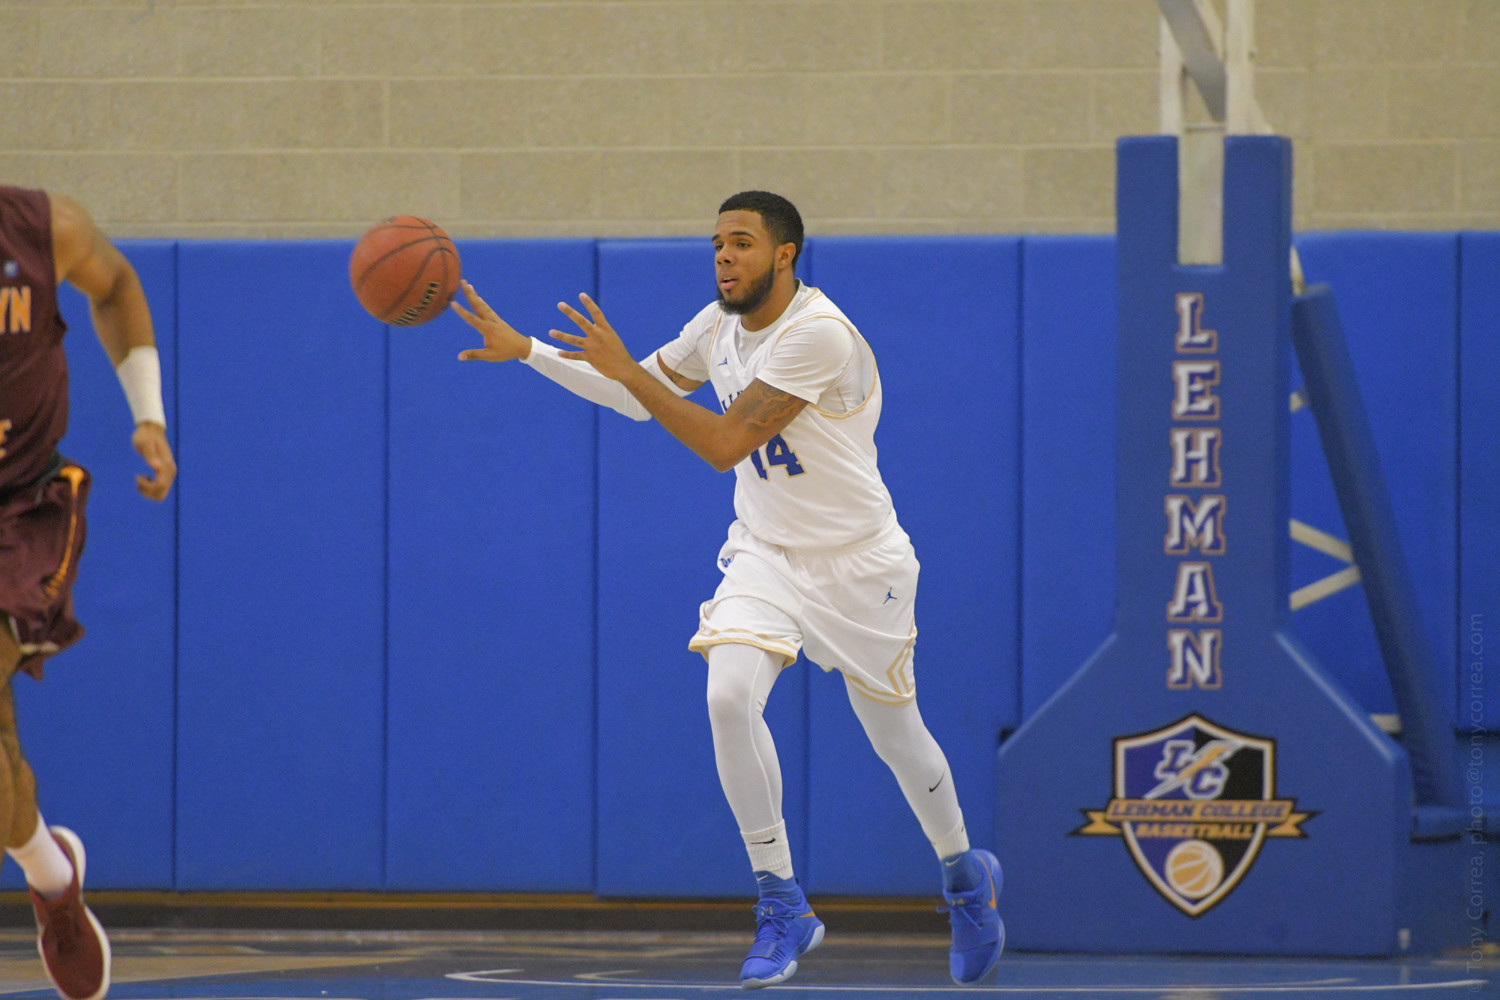 Lehman senior Jean Marcial poured in a game-high 23 points in the Lightning's 88-63 victory over York last week.